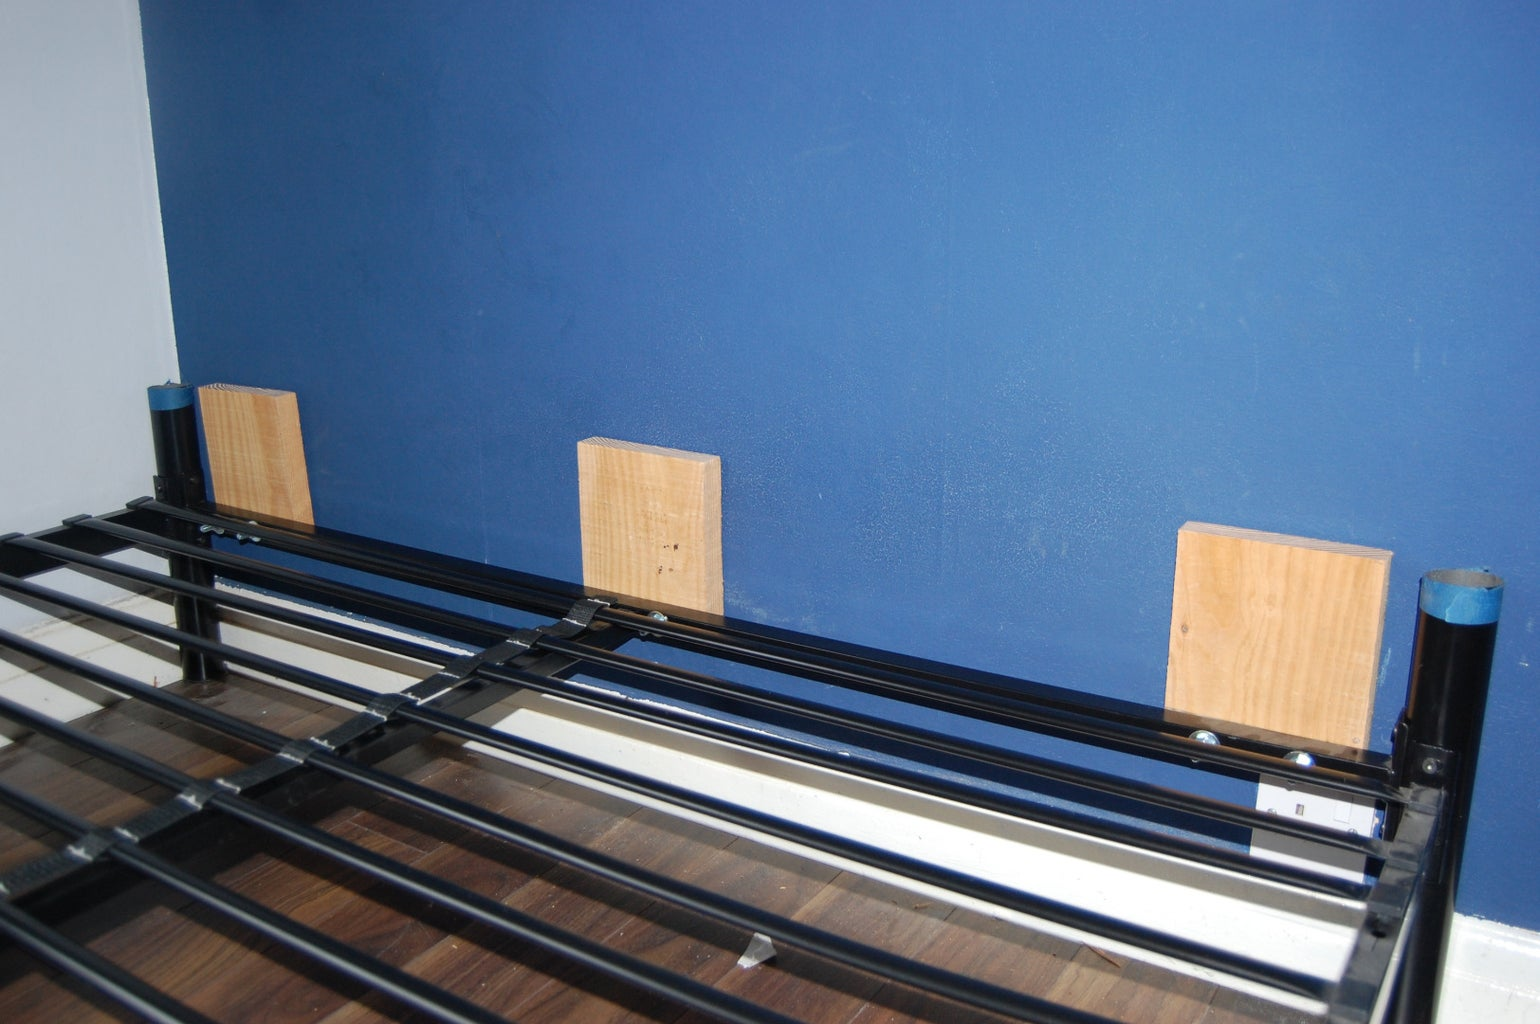 Bolt the Wood to the Bed Frame